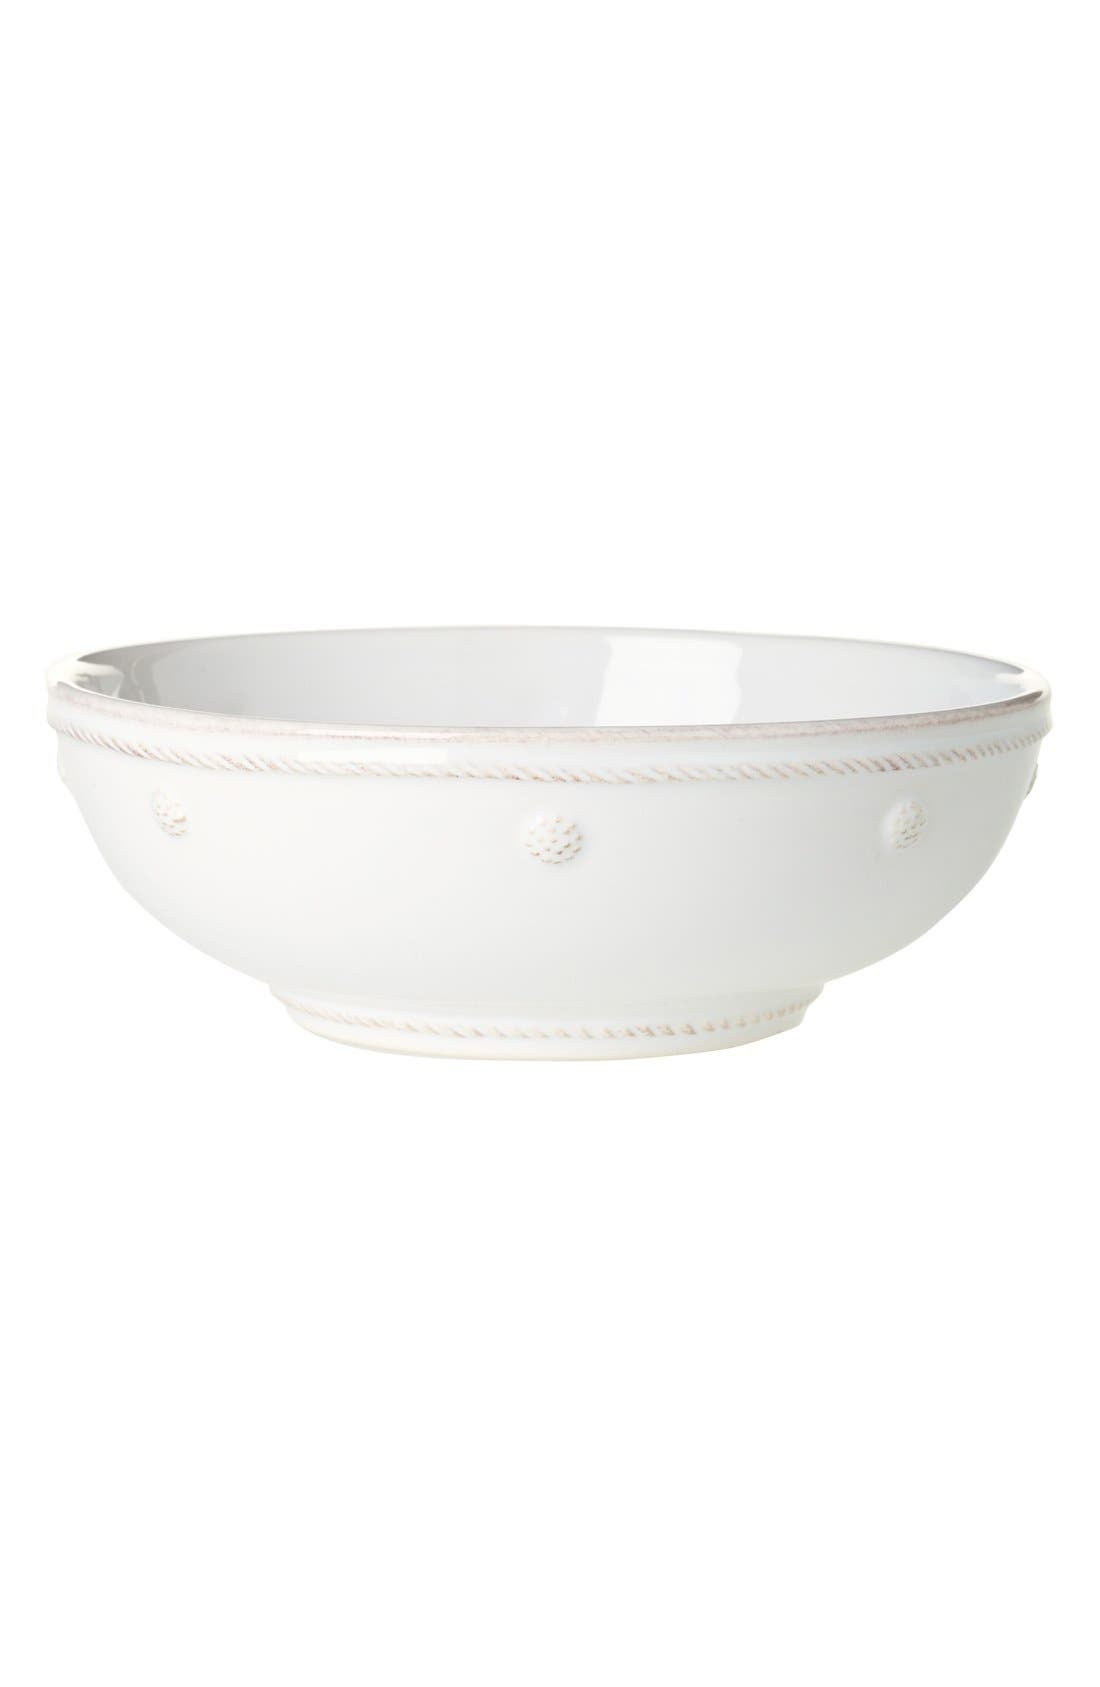 Juliska 'Berry and Thread' Coupe Pasta Bowl